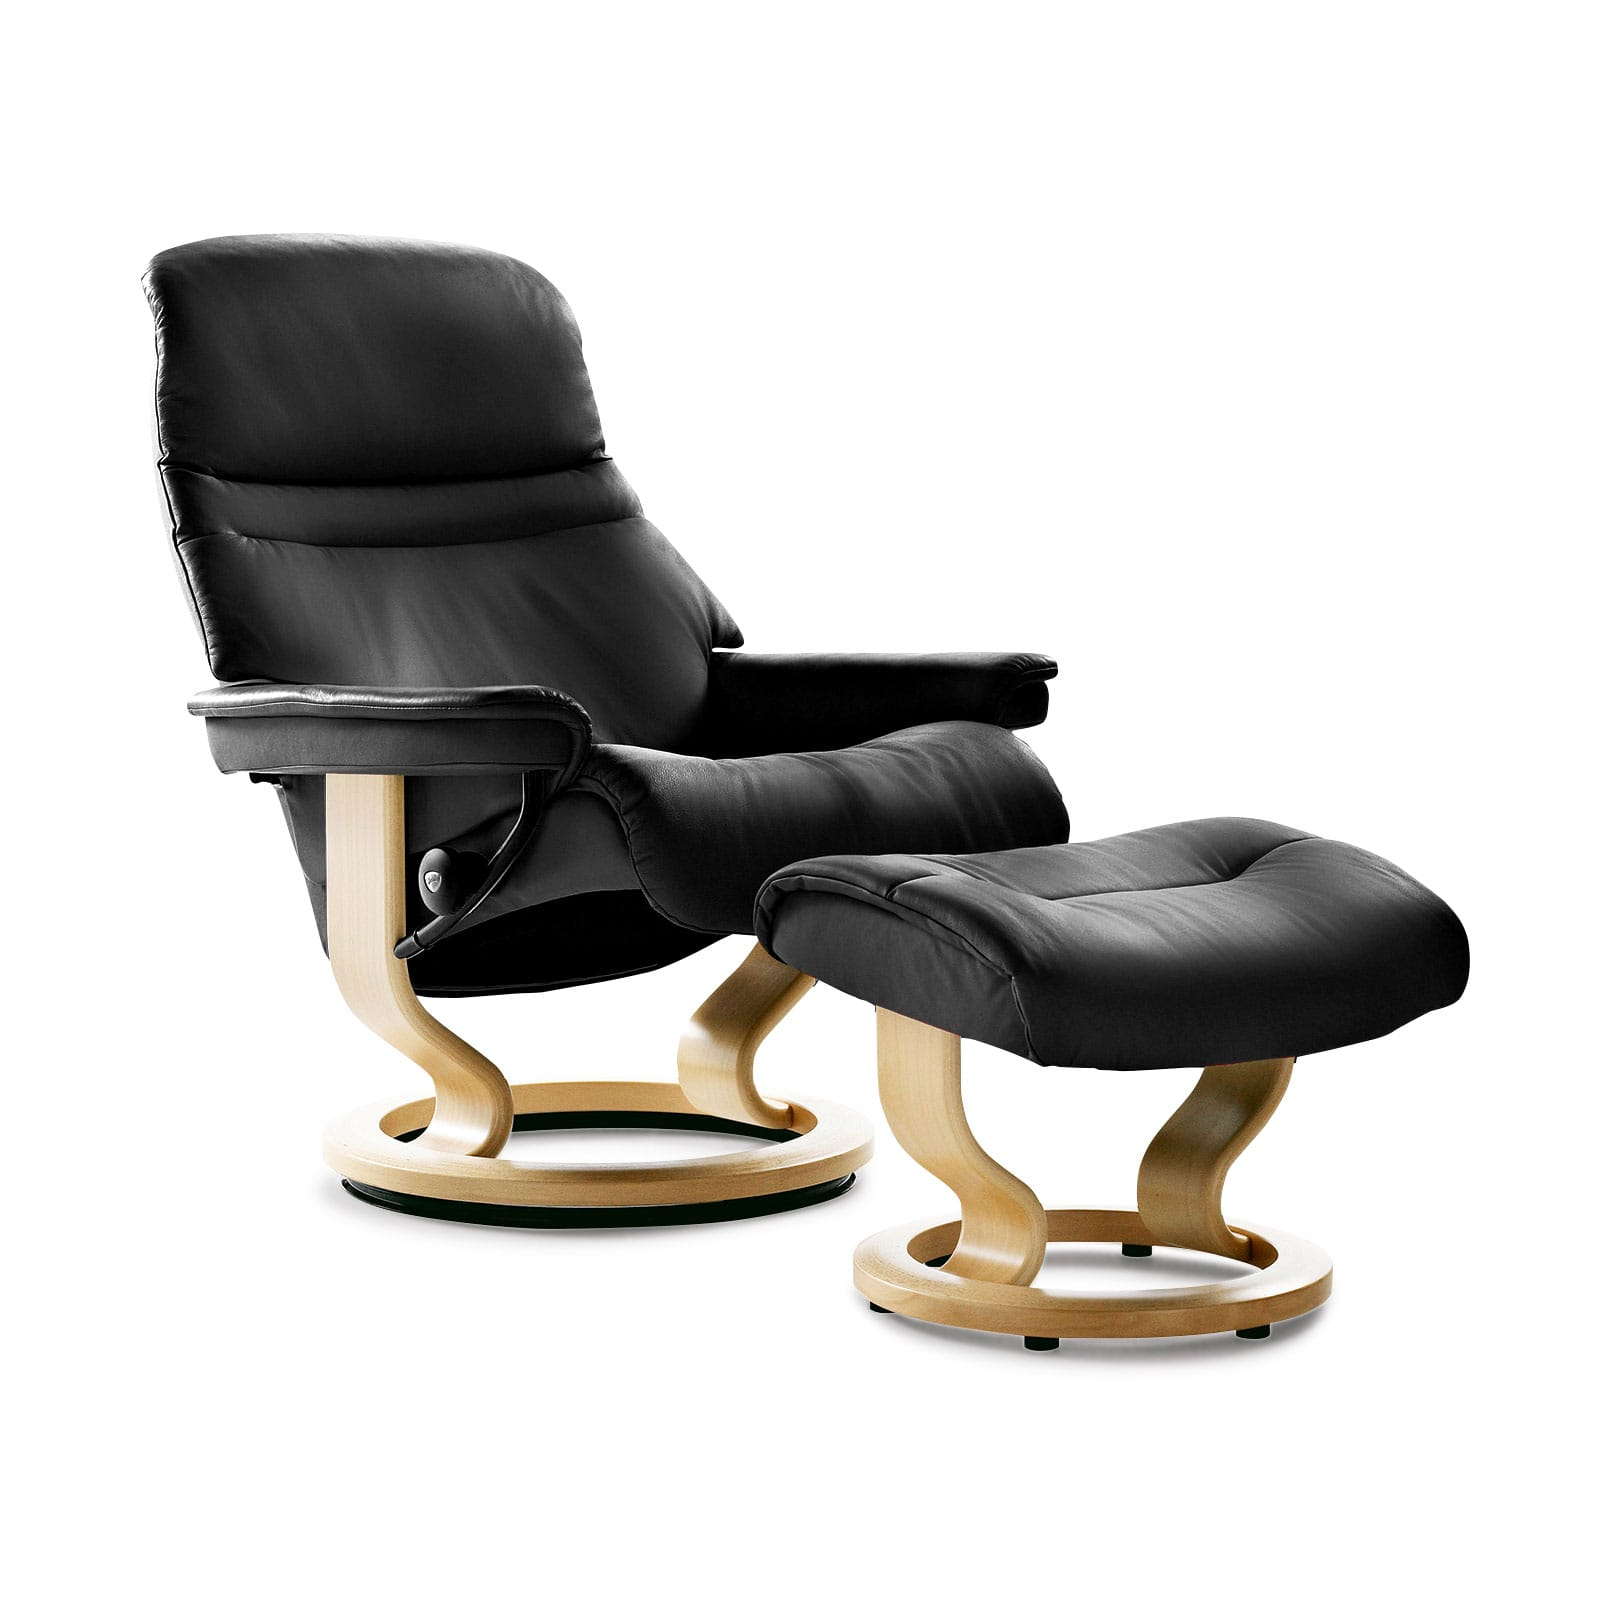 Stressless Sessel Testberichte Stressless Sessel Sunrise (m) Batick Black Mit Hocker